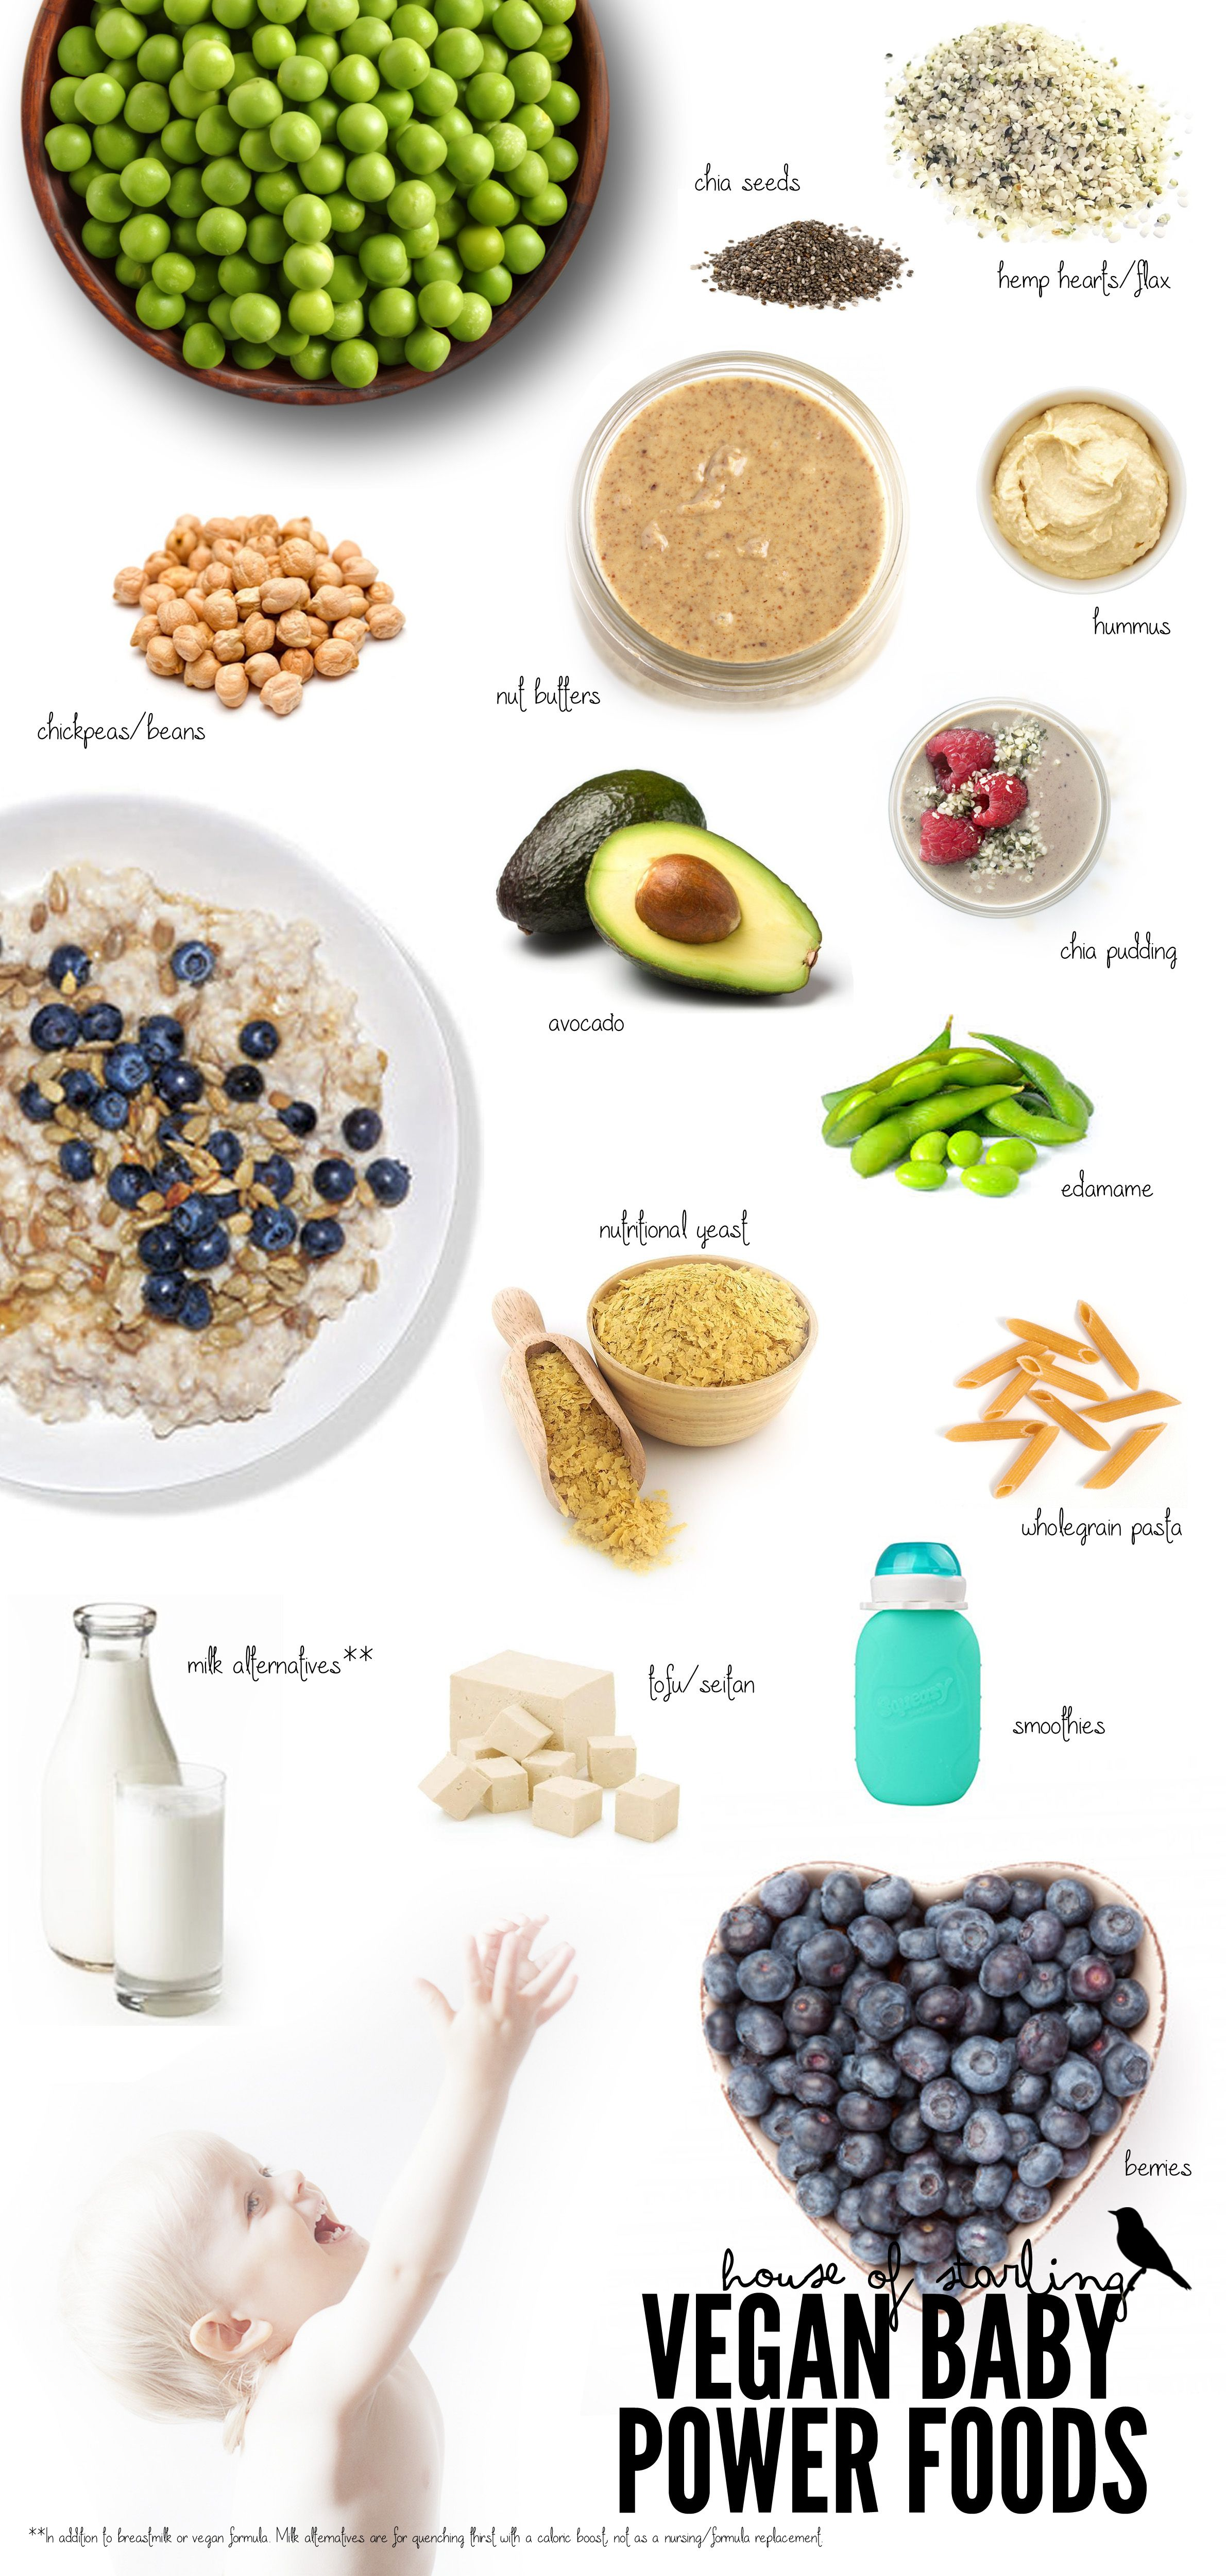 whole food plant based diet for babies